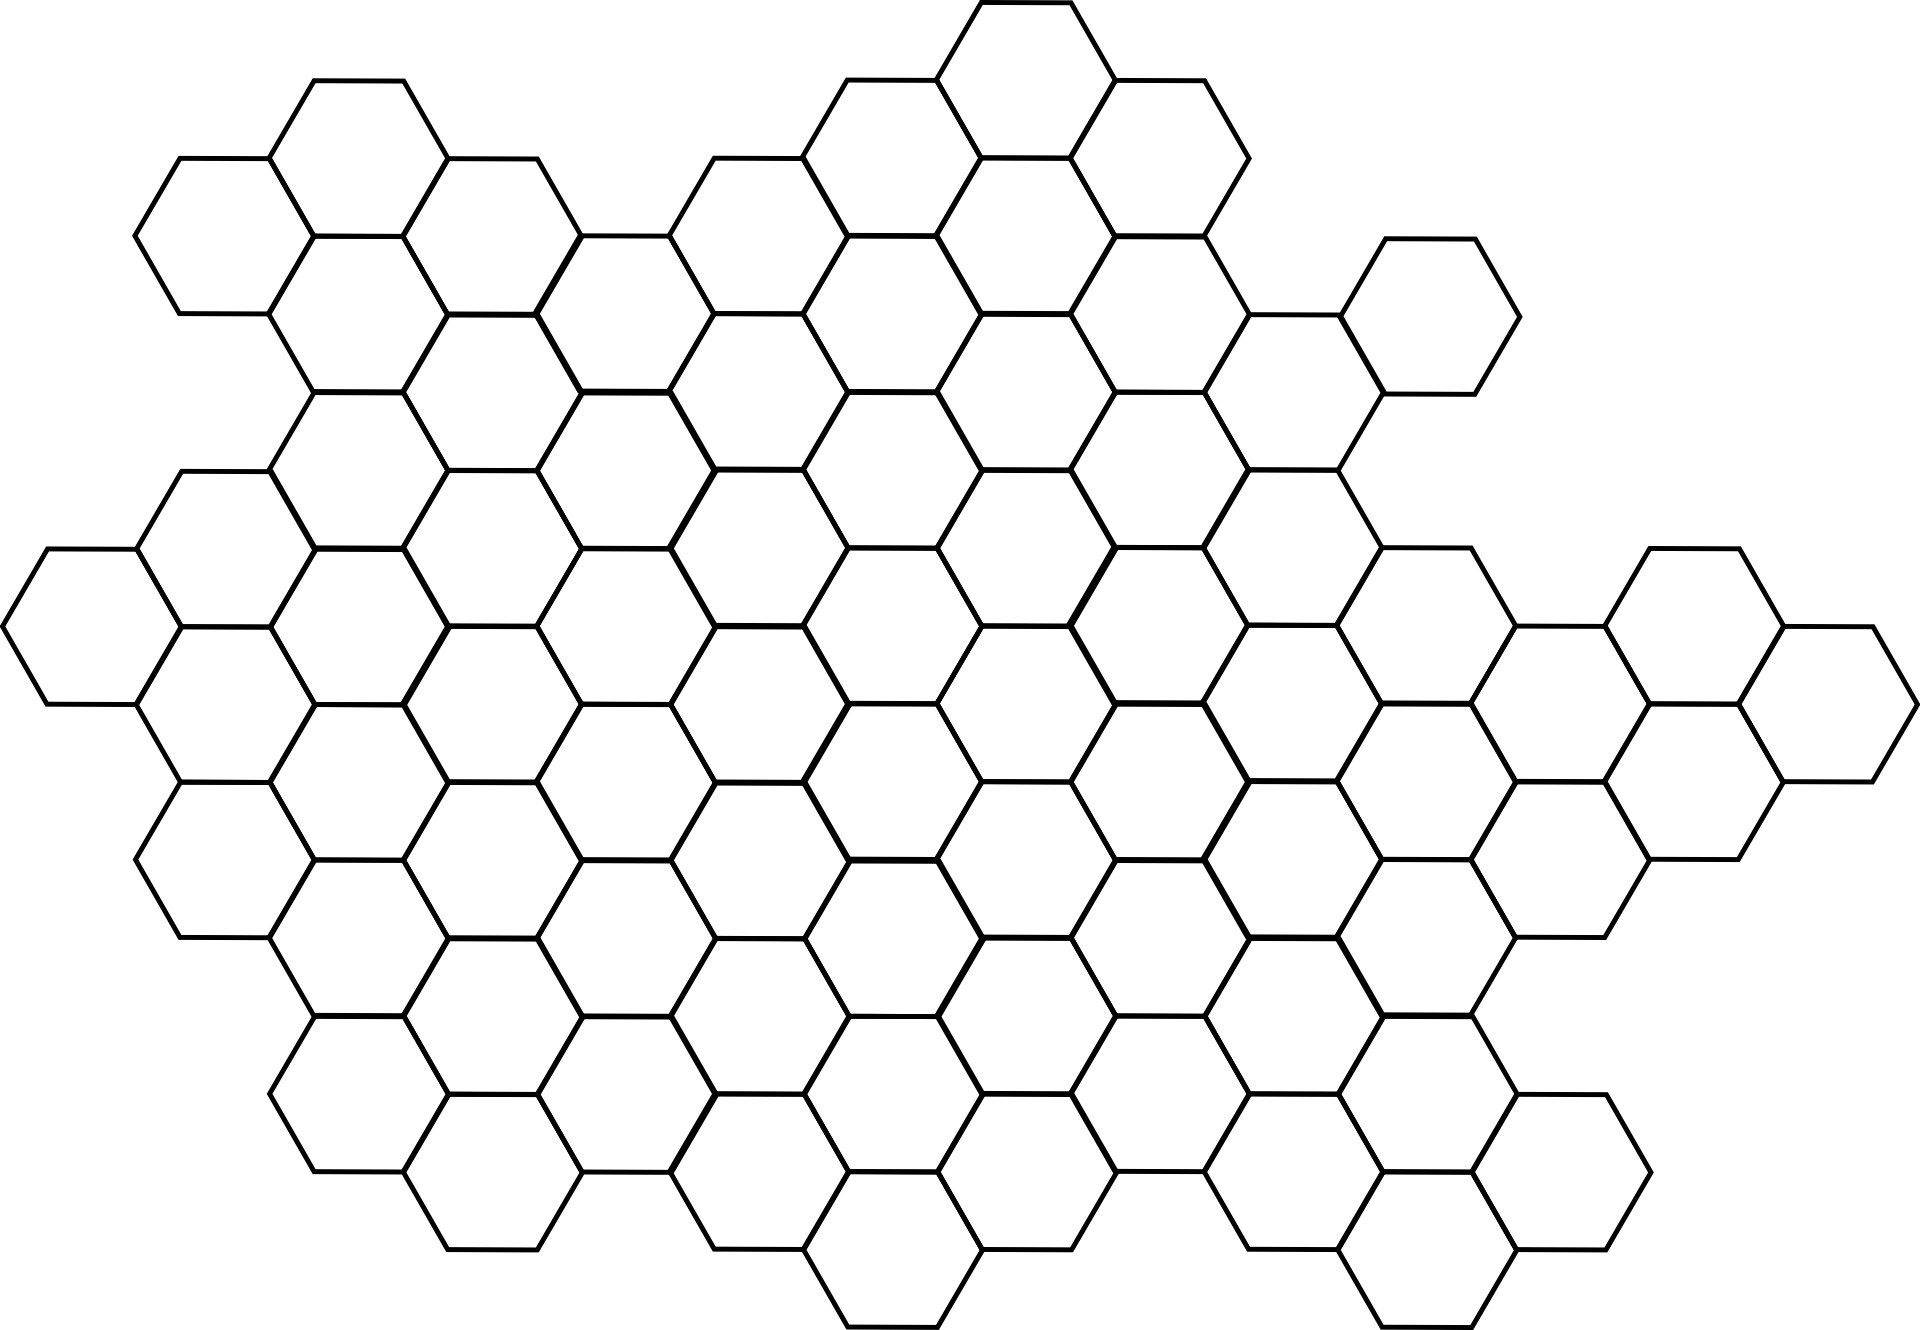 Black and red honeycomb png. Grid hexagon patterns free